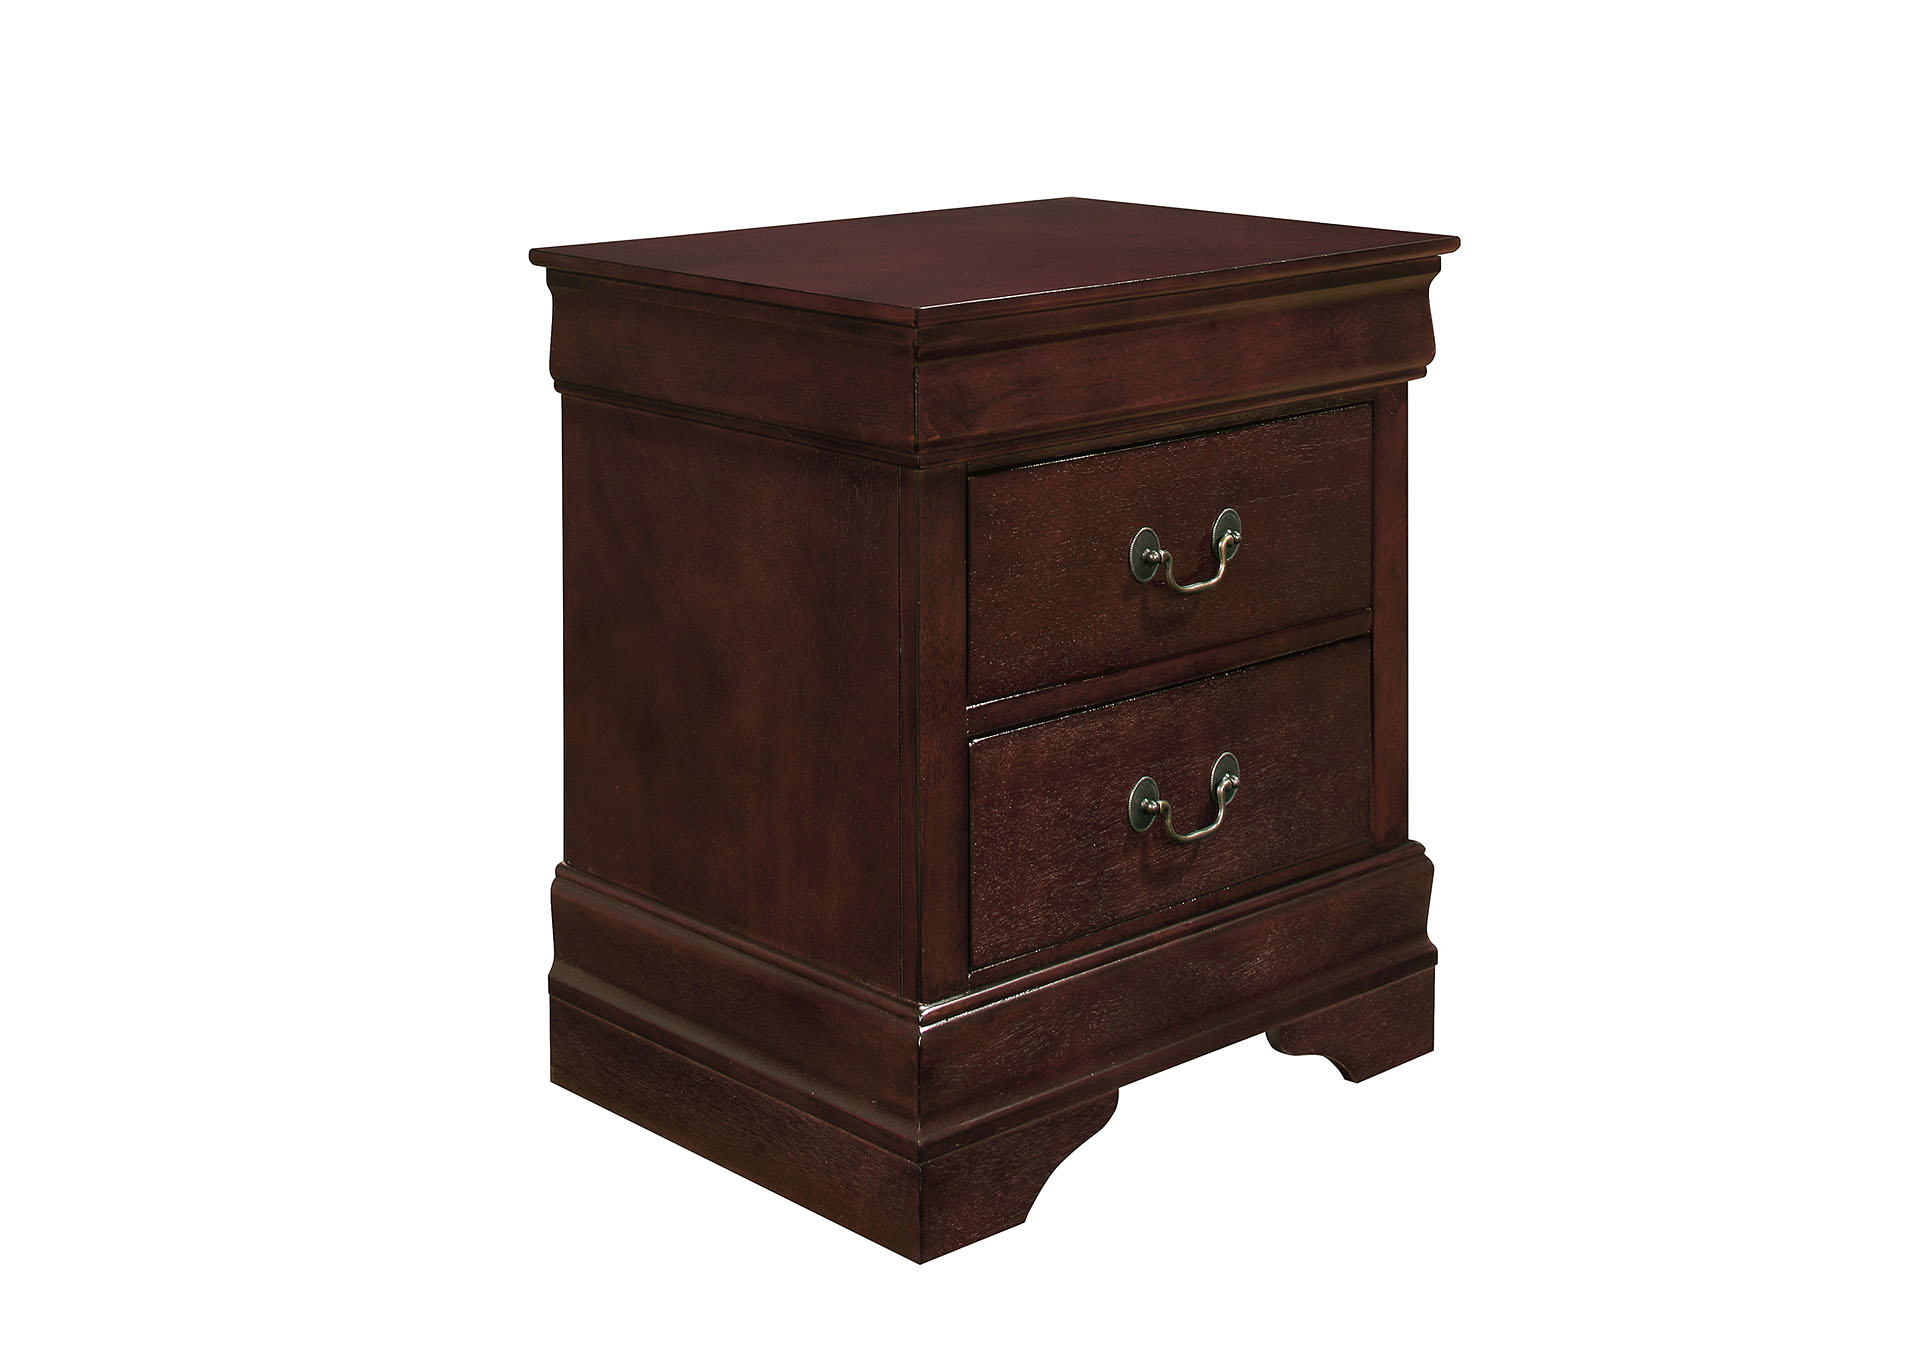 Marley Merlot Nightstand,Global Furniture USA